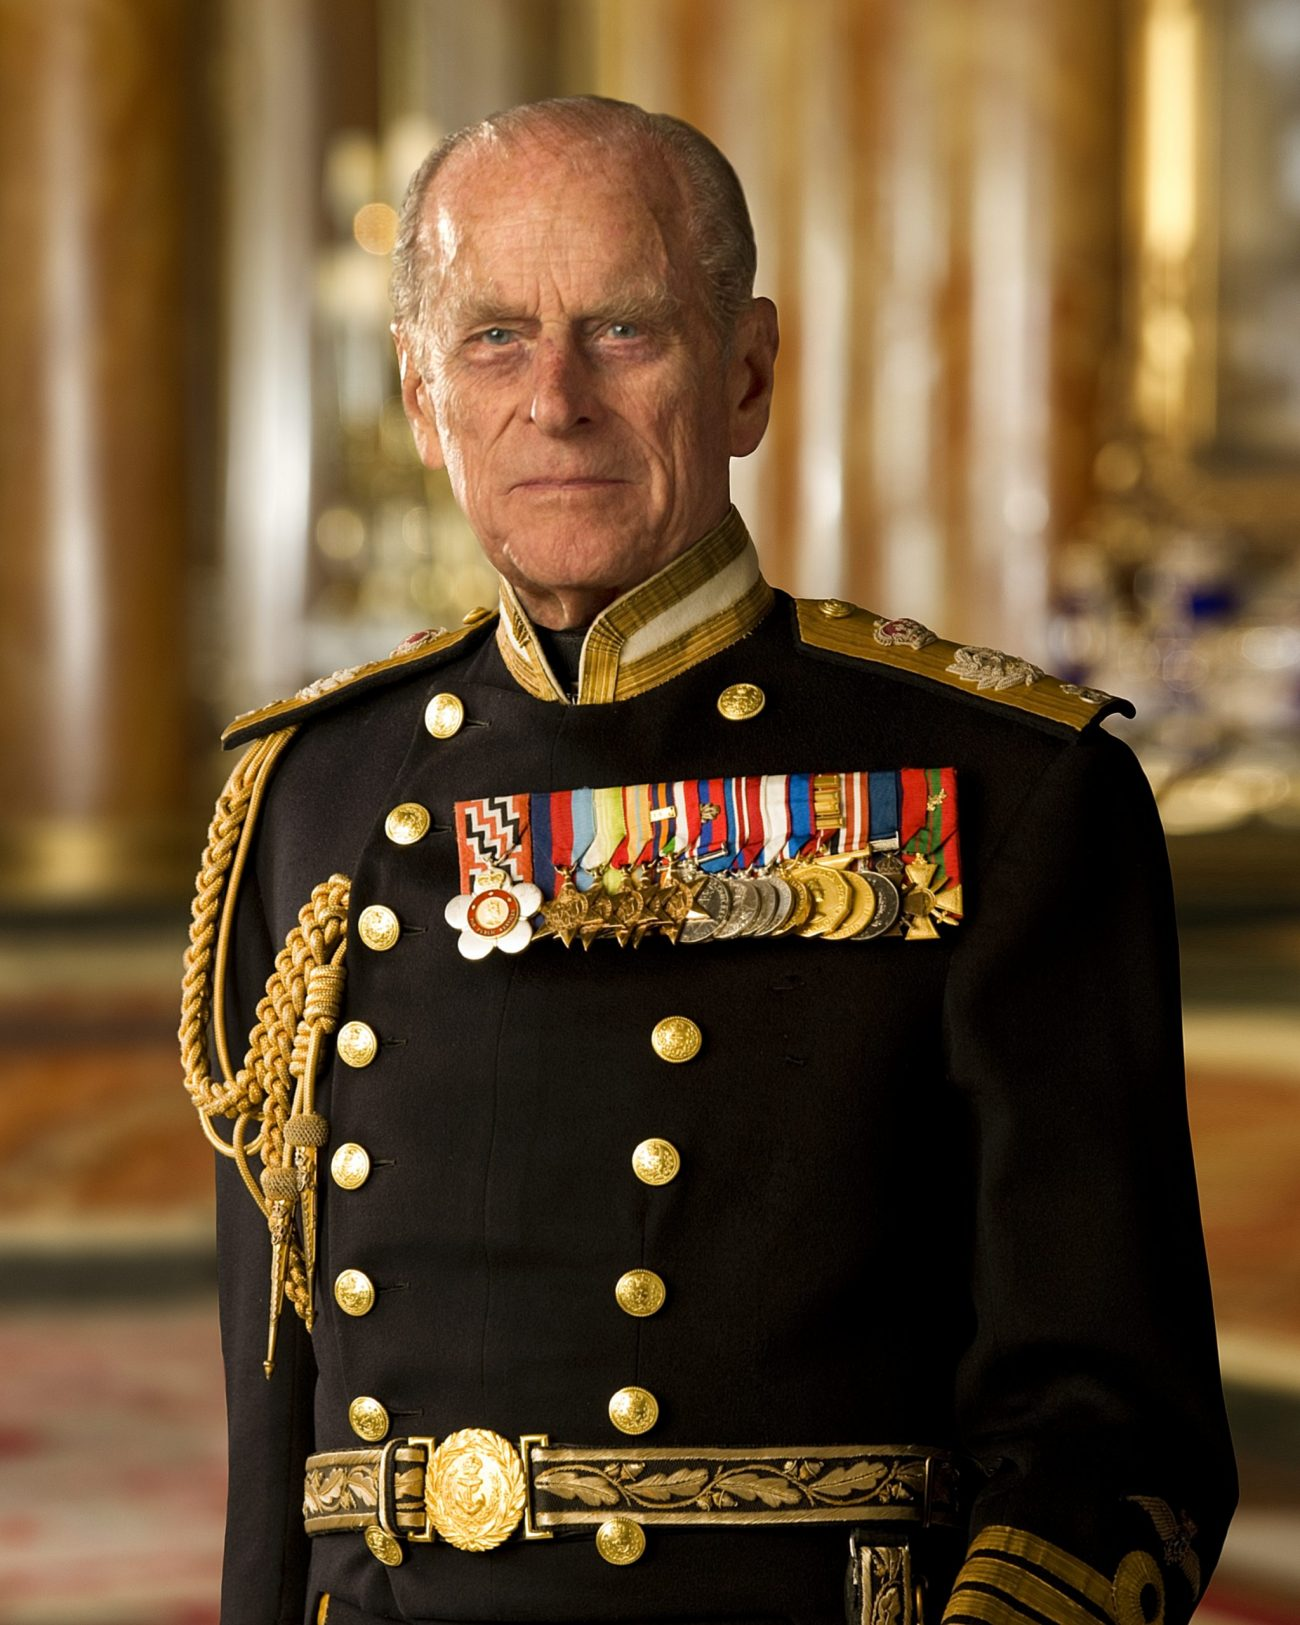 Public screening – HRH Prince Philip Memorial Service